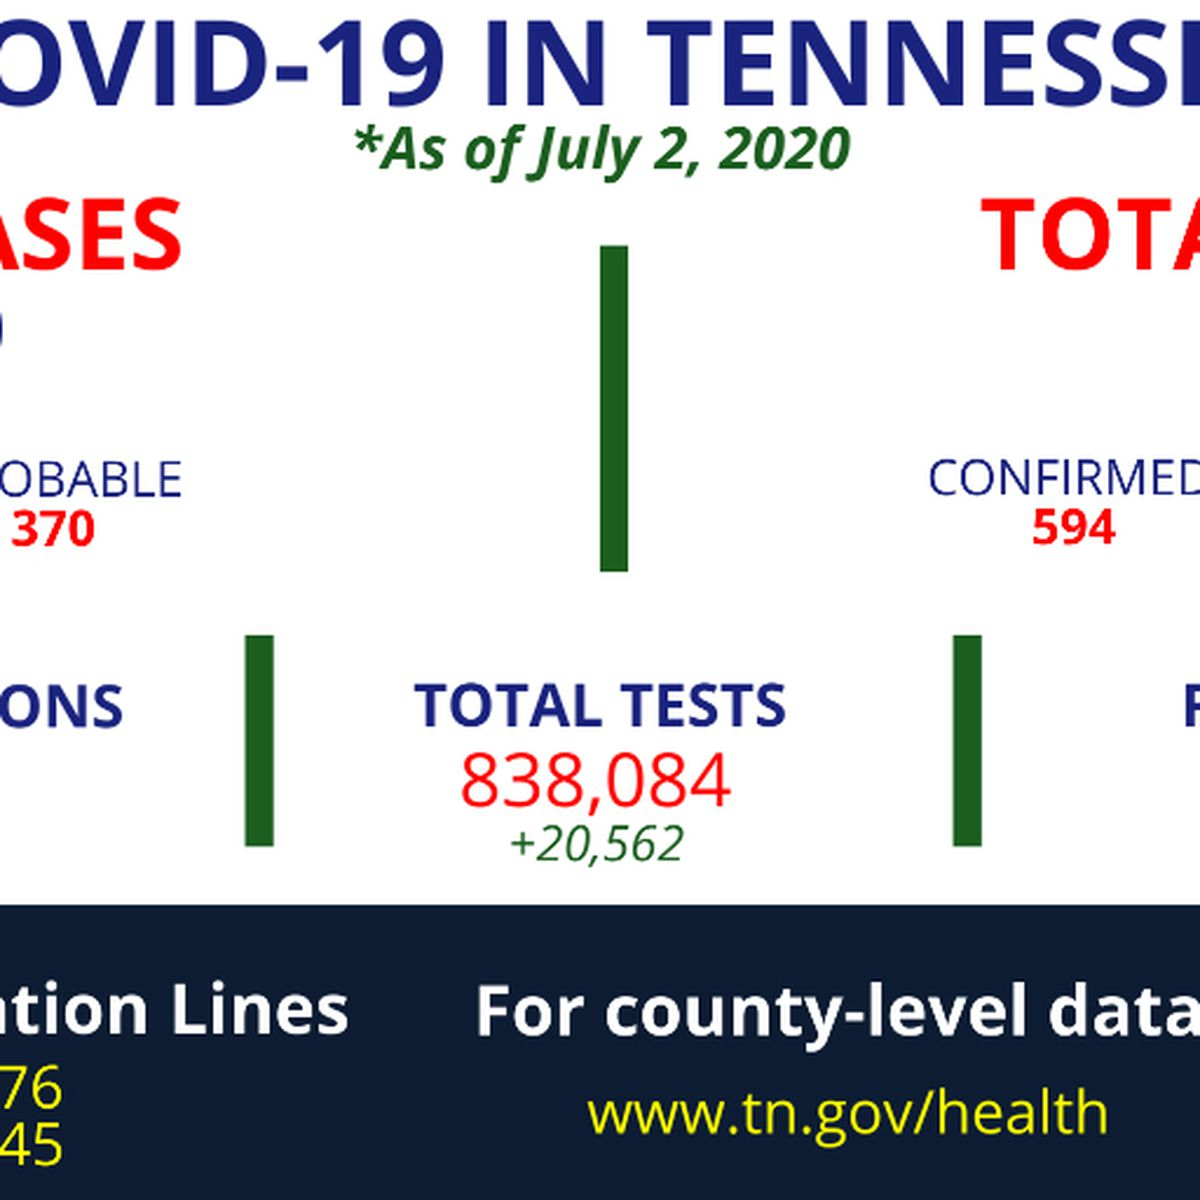 TDH reports 1,575 new coronavirus cases in Tennessee; More than half of the state's total cases have recovered